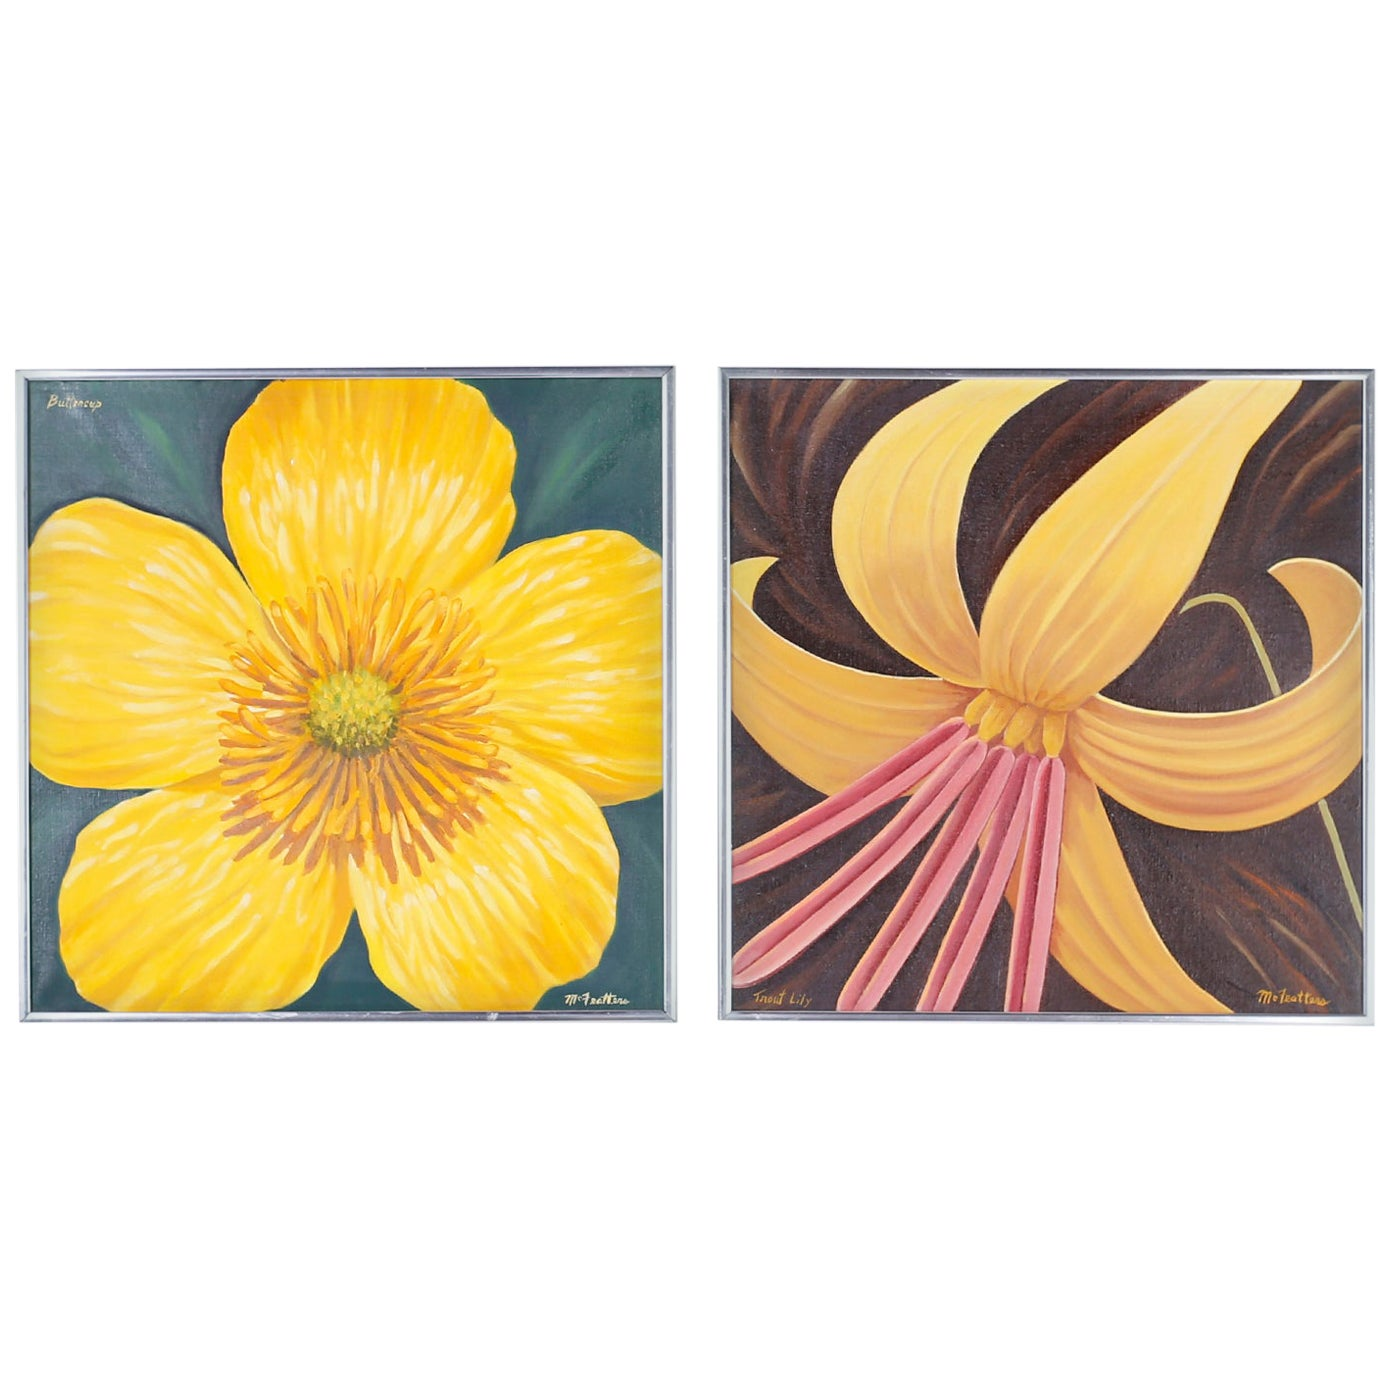 Two Acrylic on Canvas Paintings of Flowers by Dale McFeatters